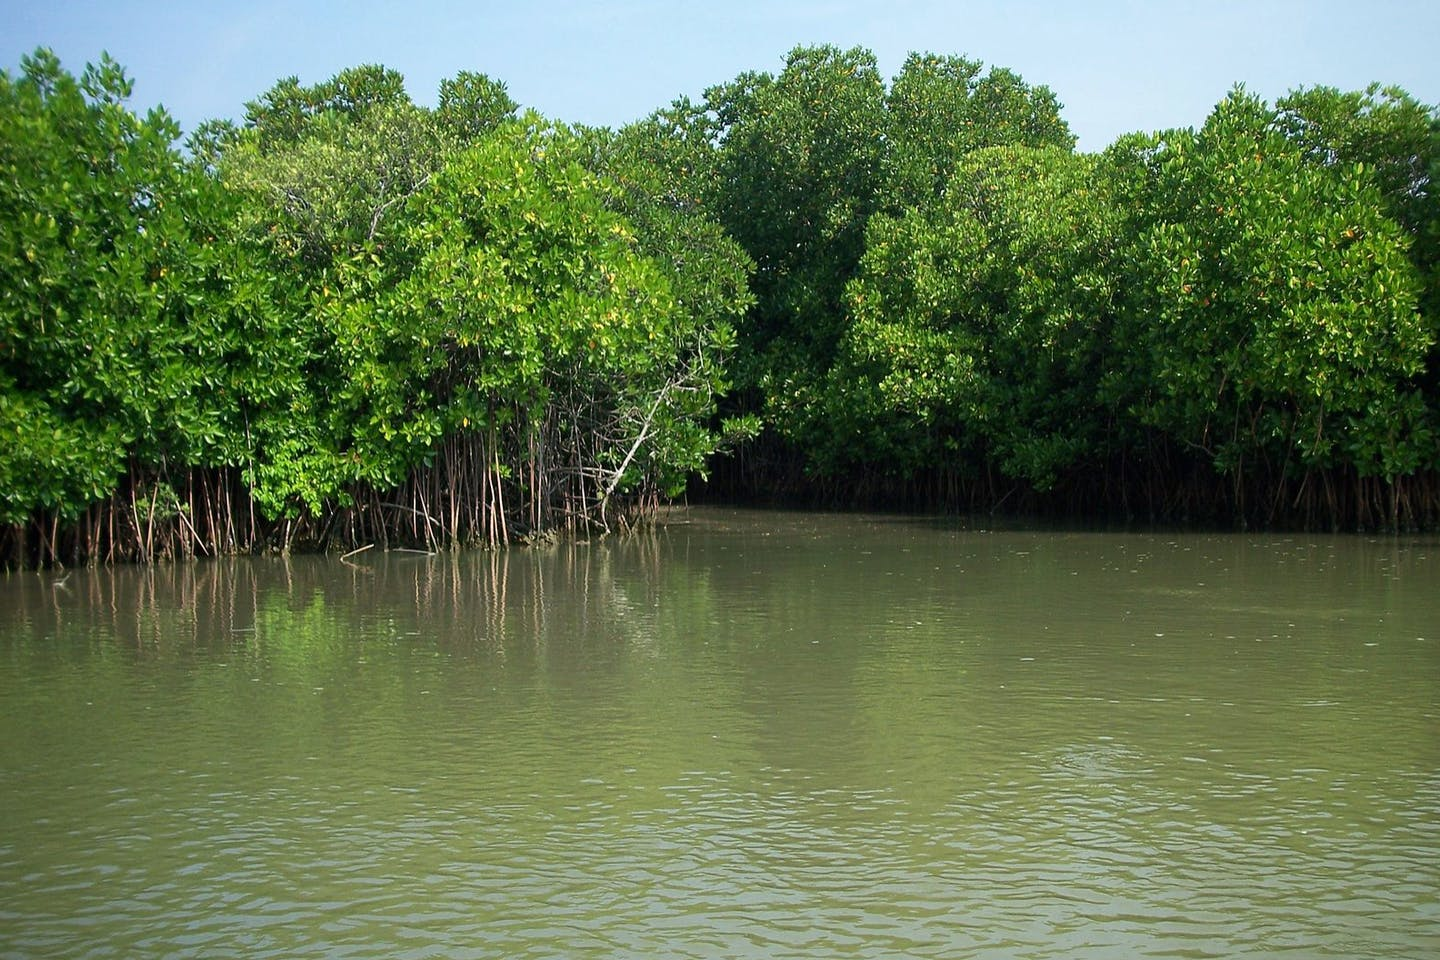 Mangroves in India